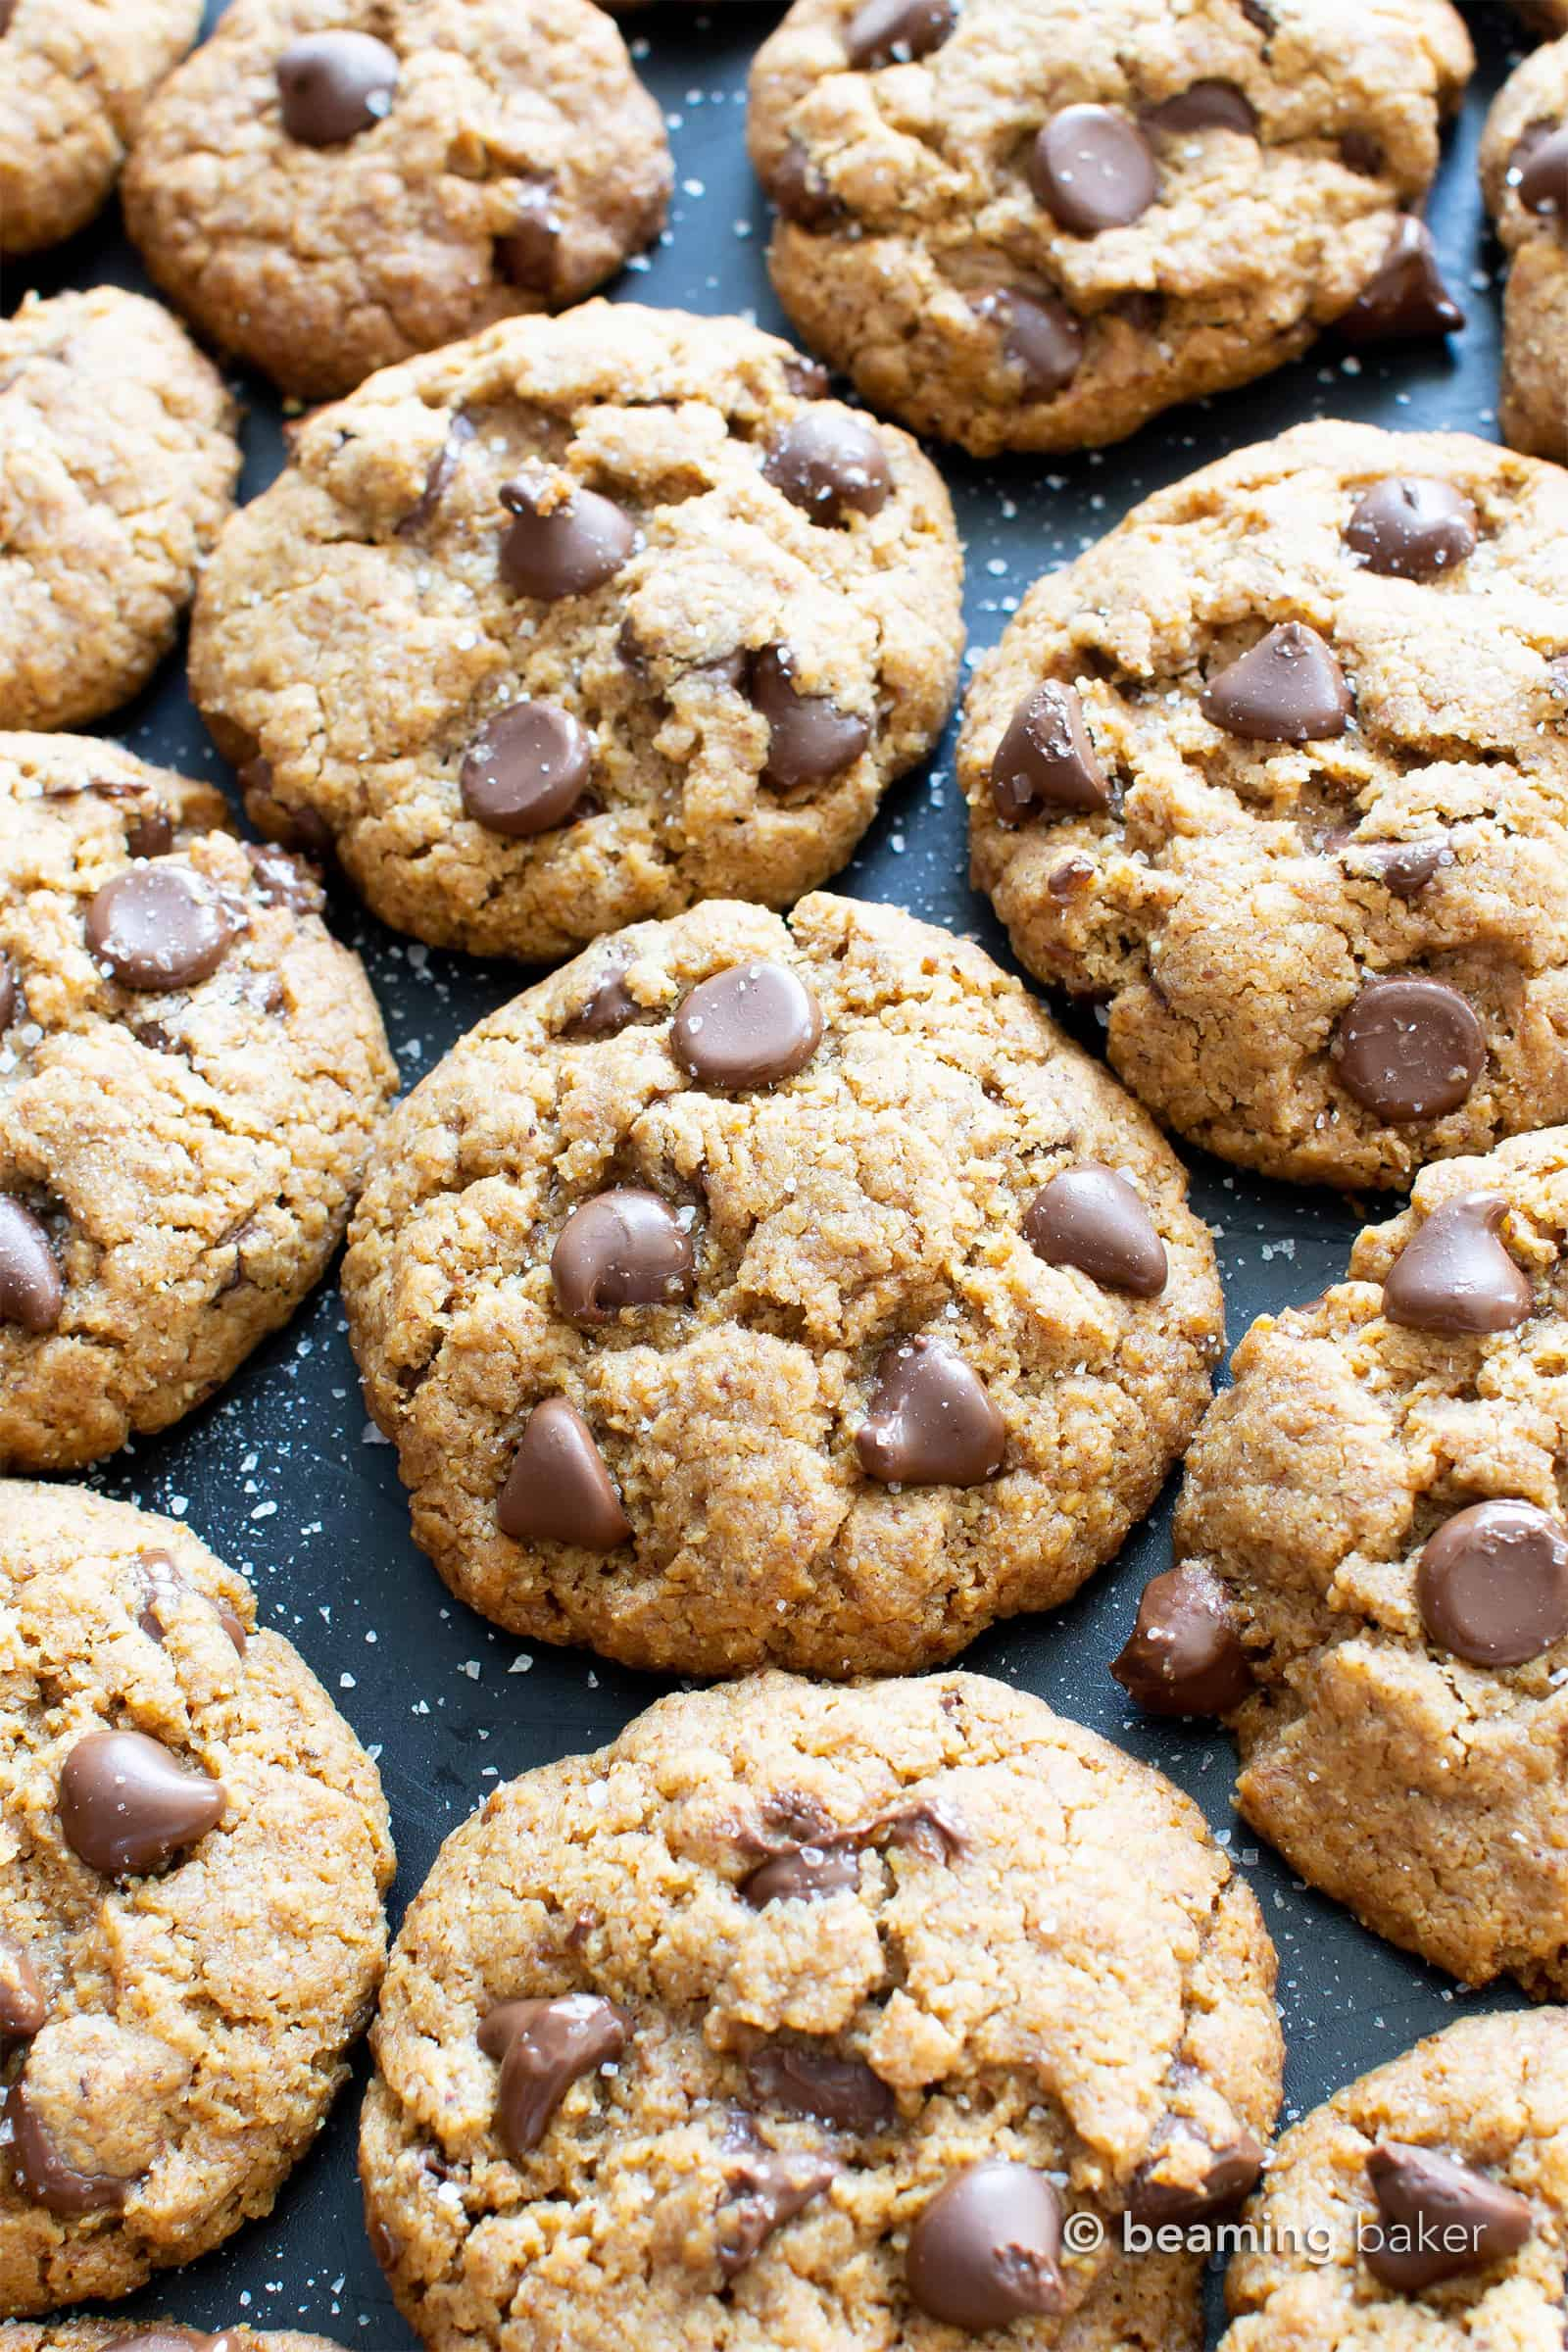 Salted Tahini Paleo Chocolate Chip Cookies (Coconut Flour): this gluten free chocolate chip cookies recipe is chewy, salty 'n sweet! The best coconut flour chocolate chip cookies made with tahini butter! #Paleo #GlutenFree #Vegan #Cookies #GrainFree #Chocolate | Recipe at BeamingBaker.com